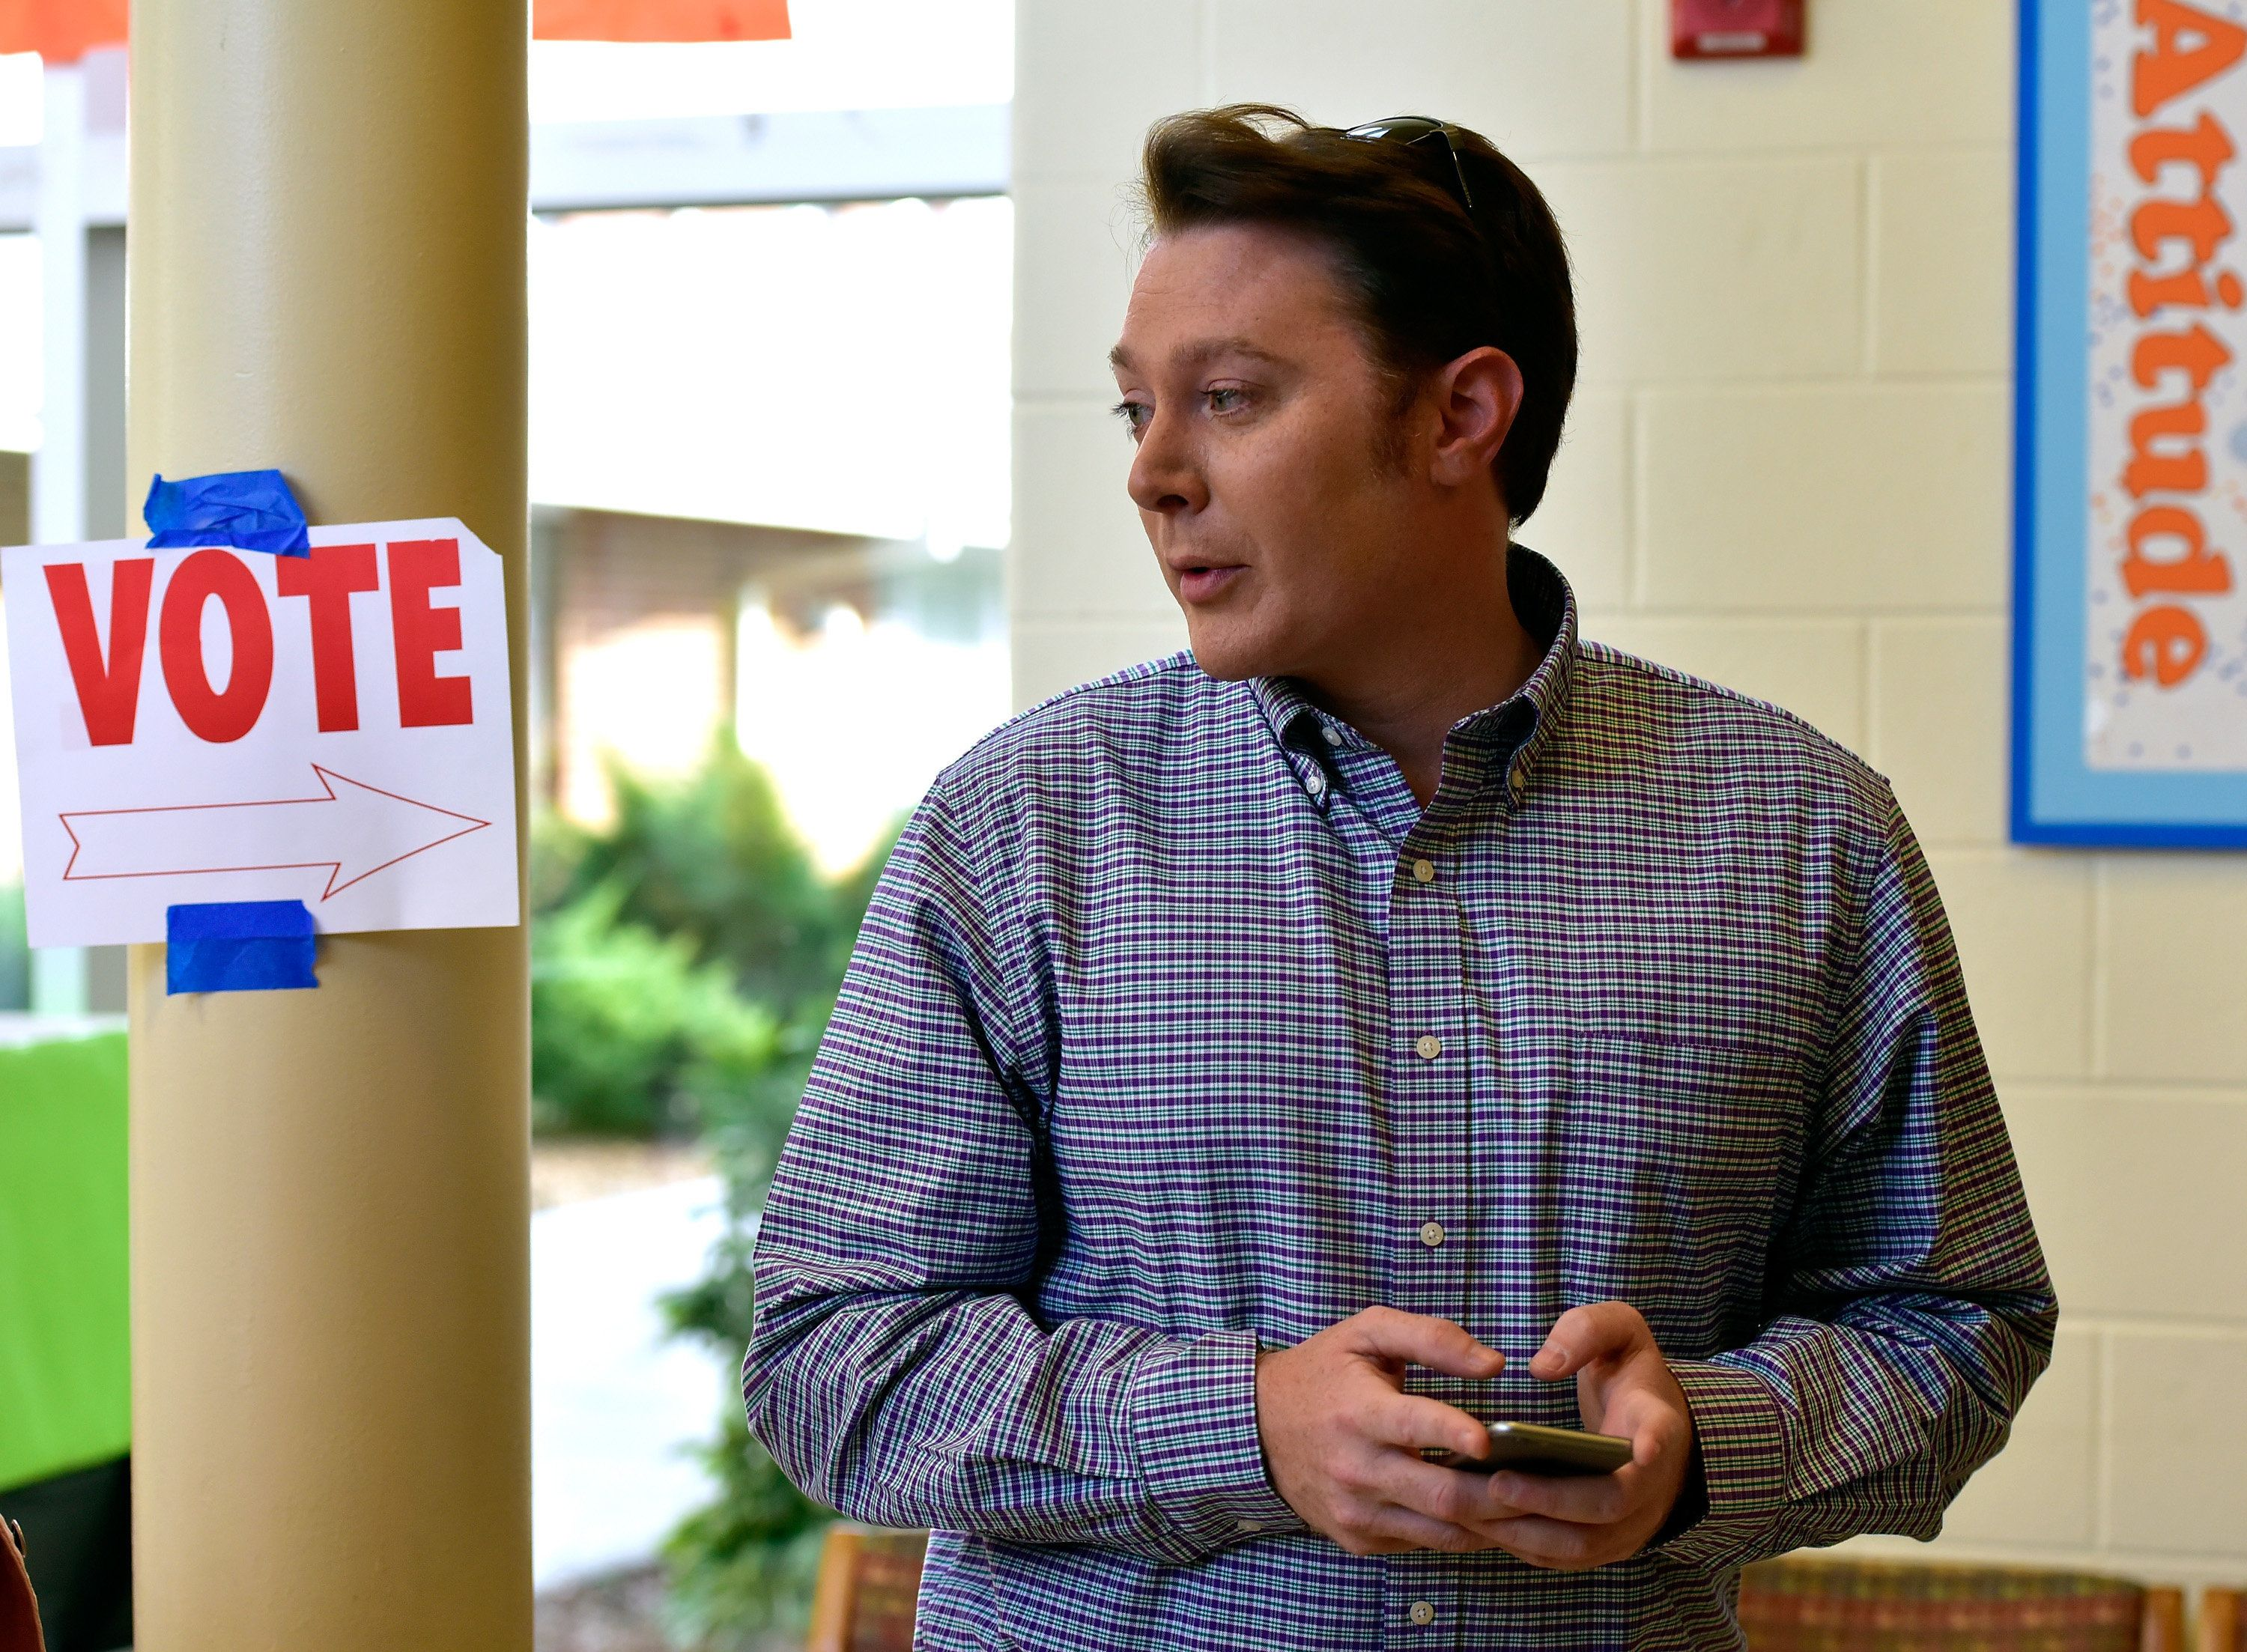 CARY, NC - NOVEMBER 04:  Clay Aiken, Democratic candidate for U.S. Congress in North Carolina's Second District, waits in line to vote in the midterm elections on November 4, 2014 at Mills Park Elementary School in Cary, North Carolina. Aiken, a former 'American Idol' contestant, is running for political office for the first time.  (Photo by Grant Halverson/Getty Images)